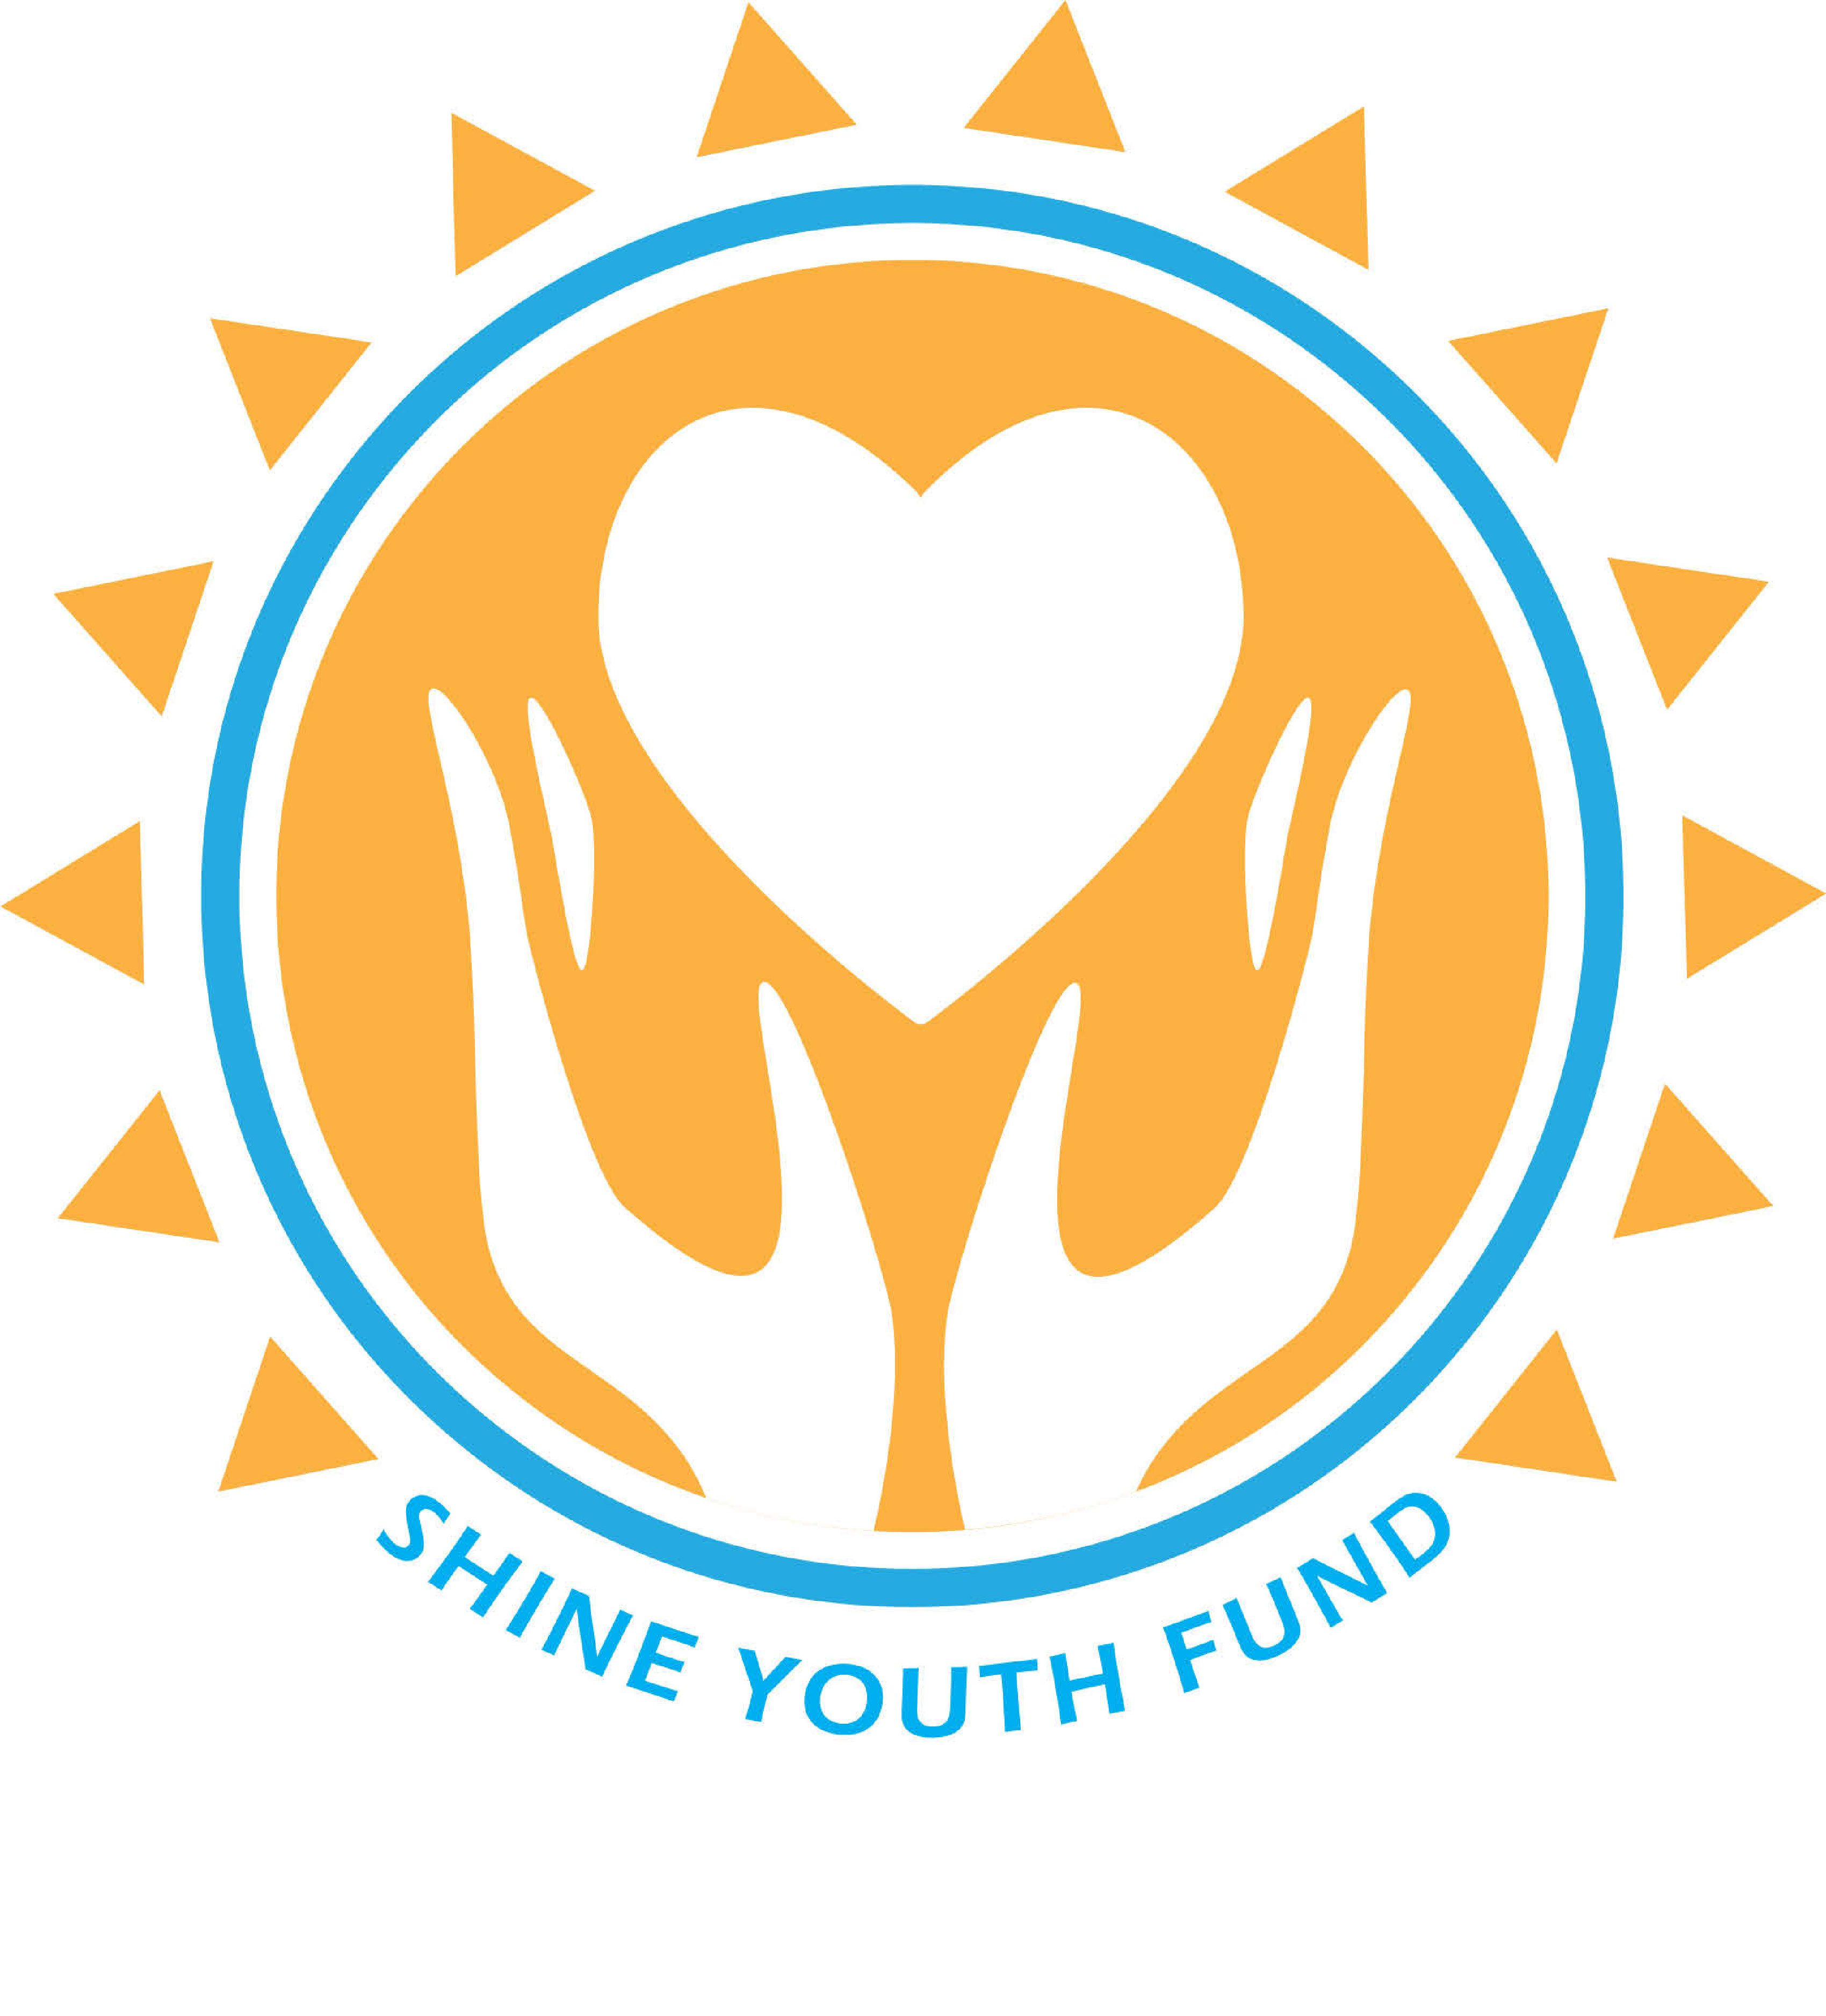 Shine Youth Fund – providing scholarship funding and accessible programs in the arts to Spokane's youth